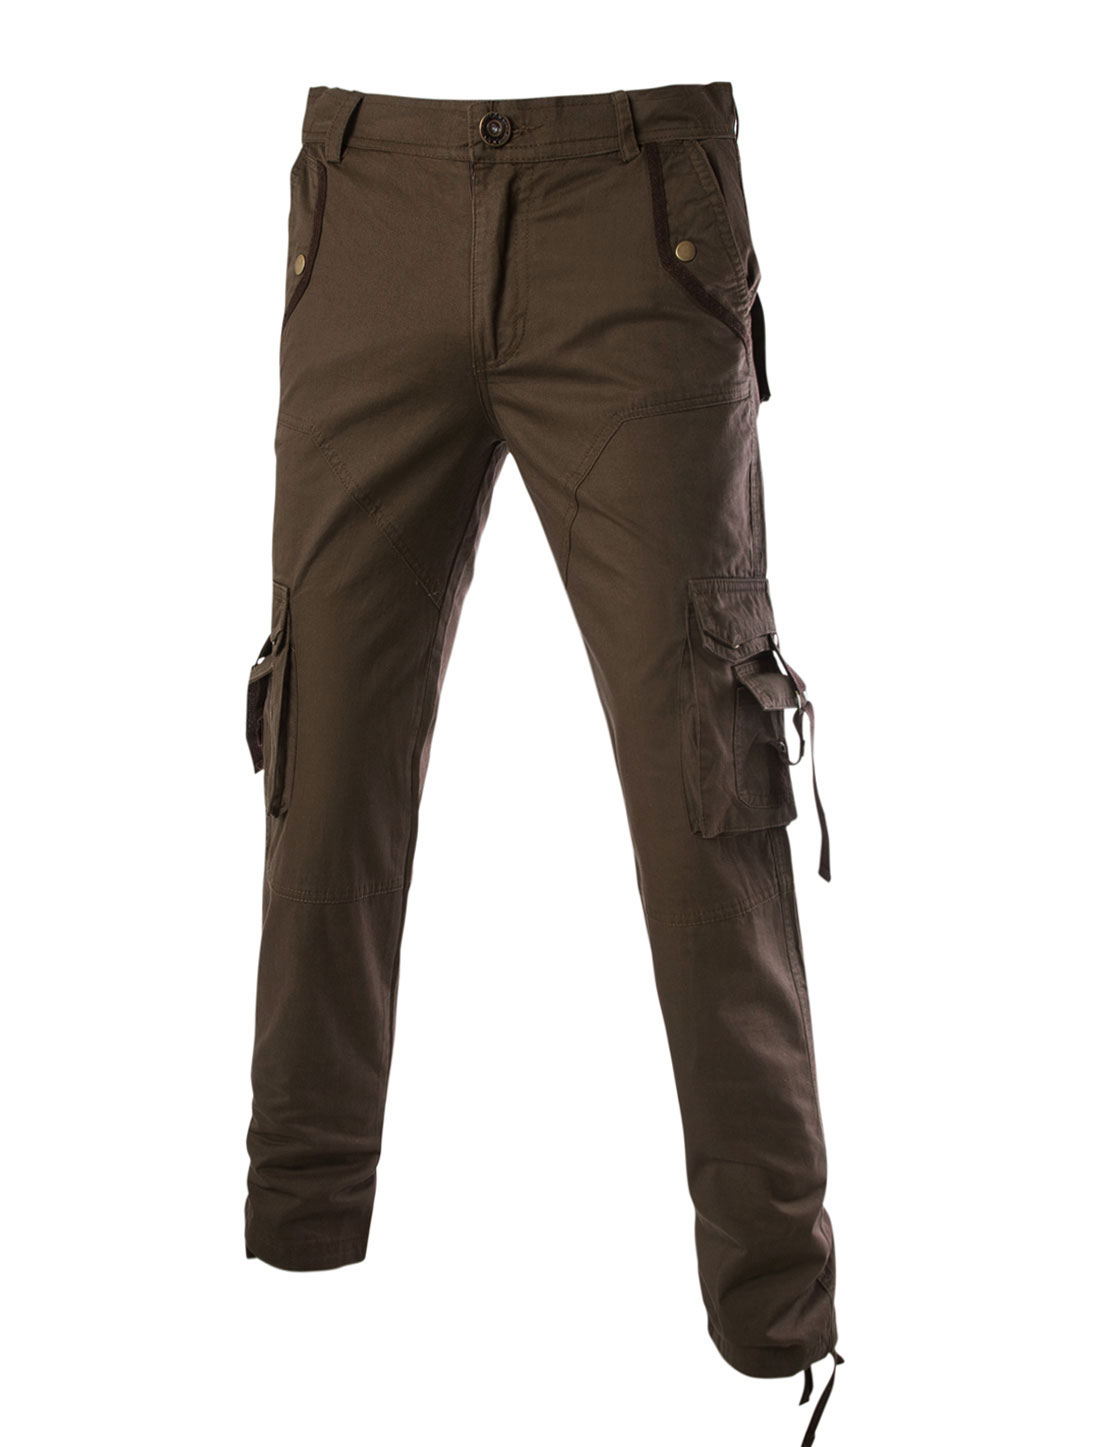 Men Pockets Work Wear Military Style Casual Cargo Trousers Khaki W34